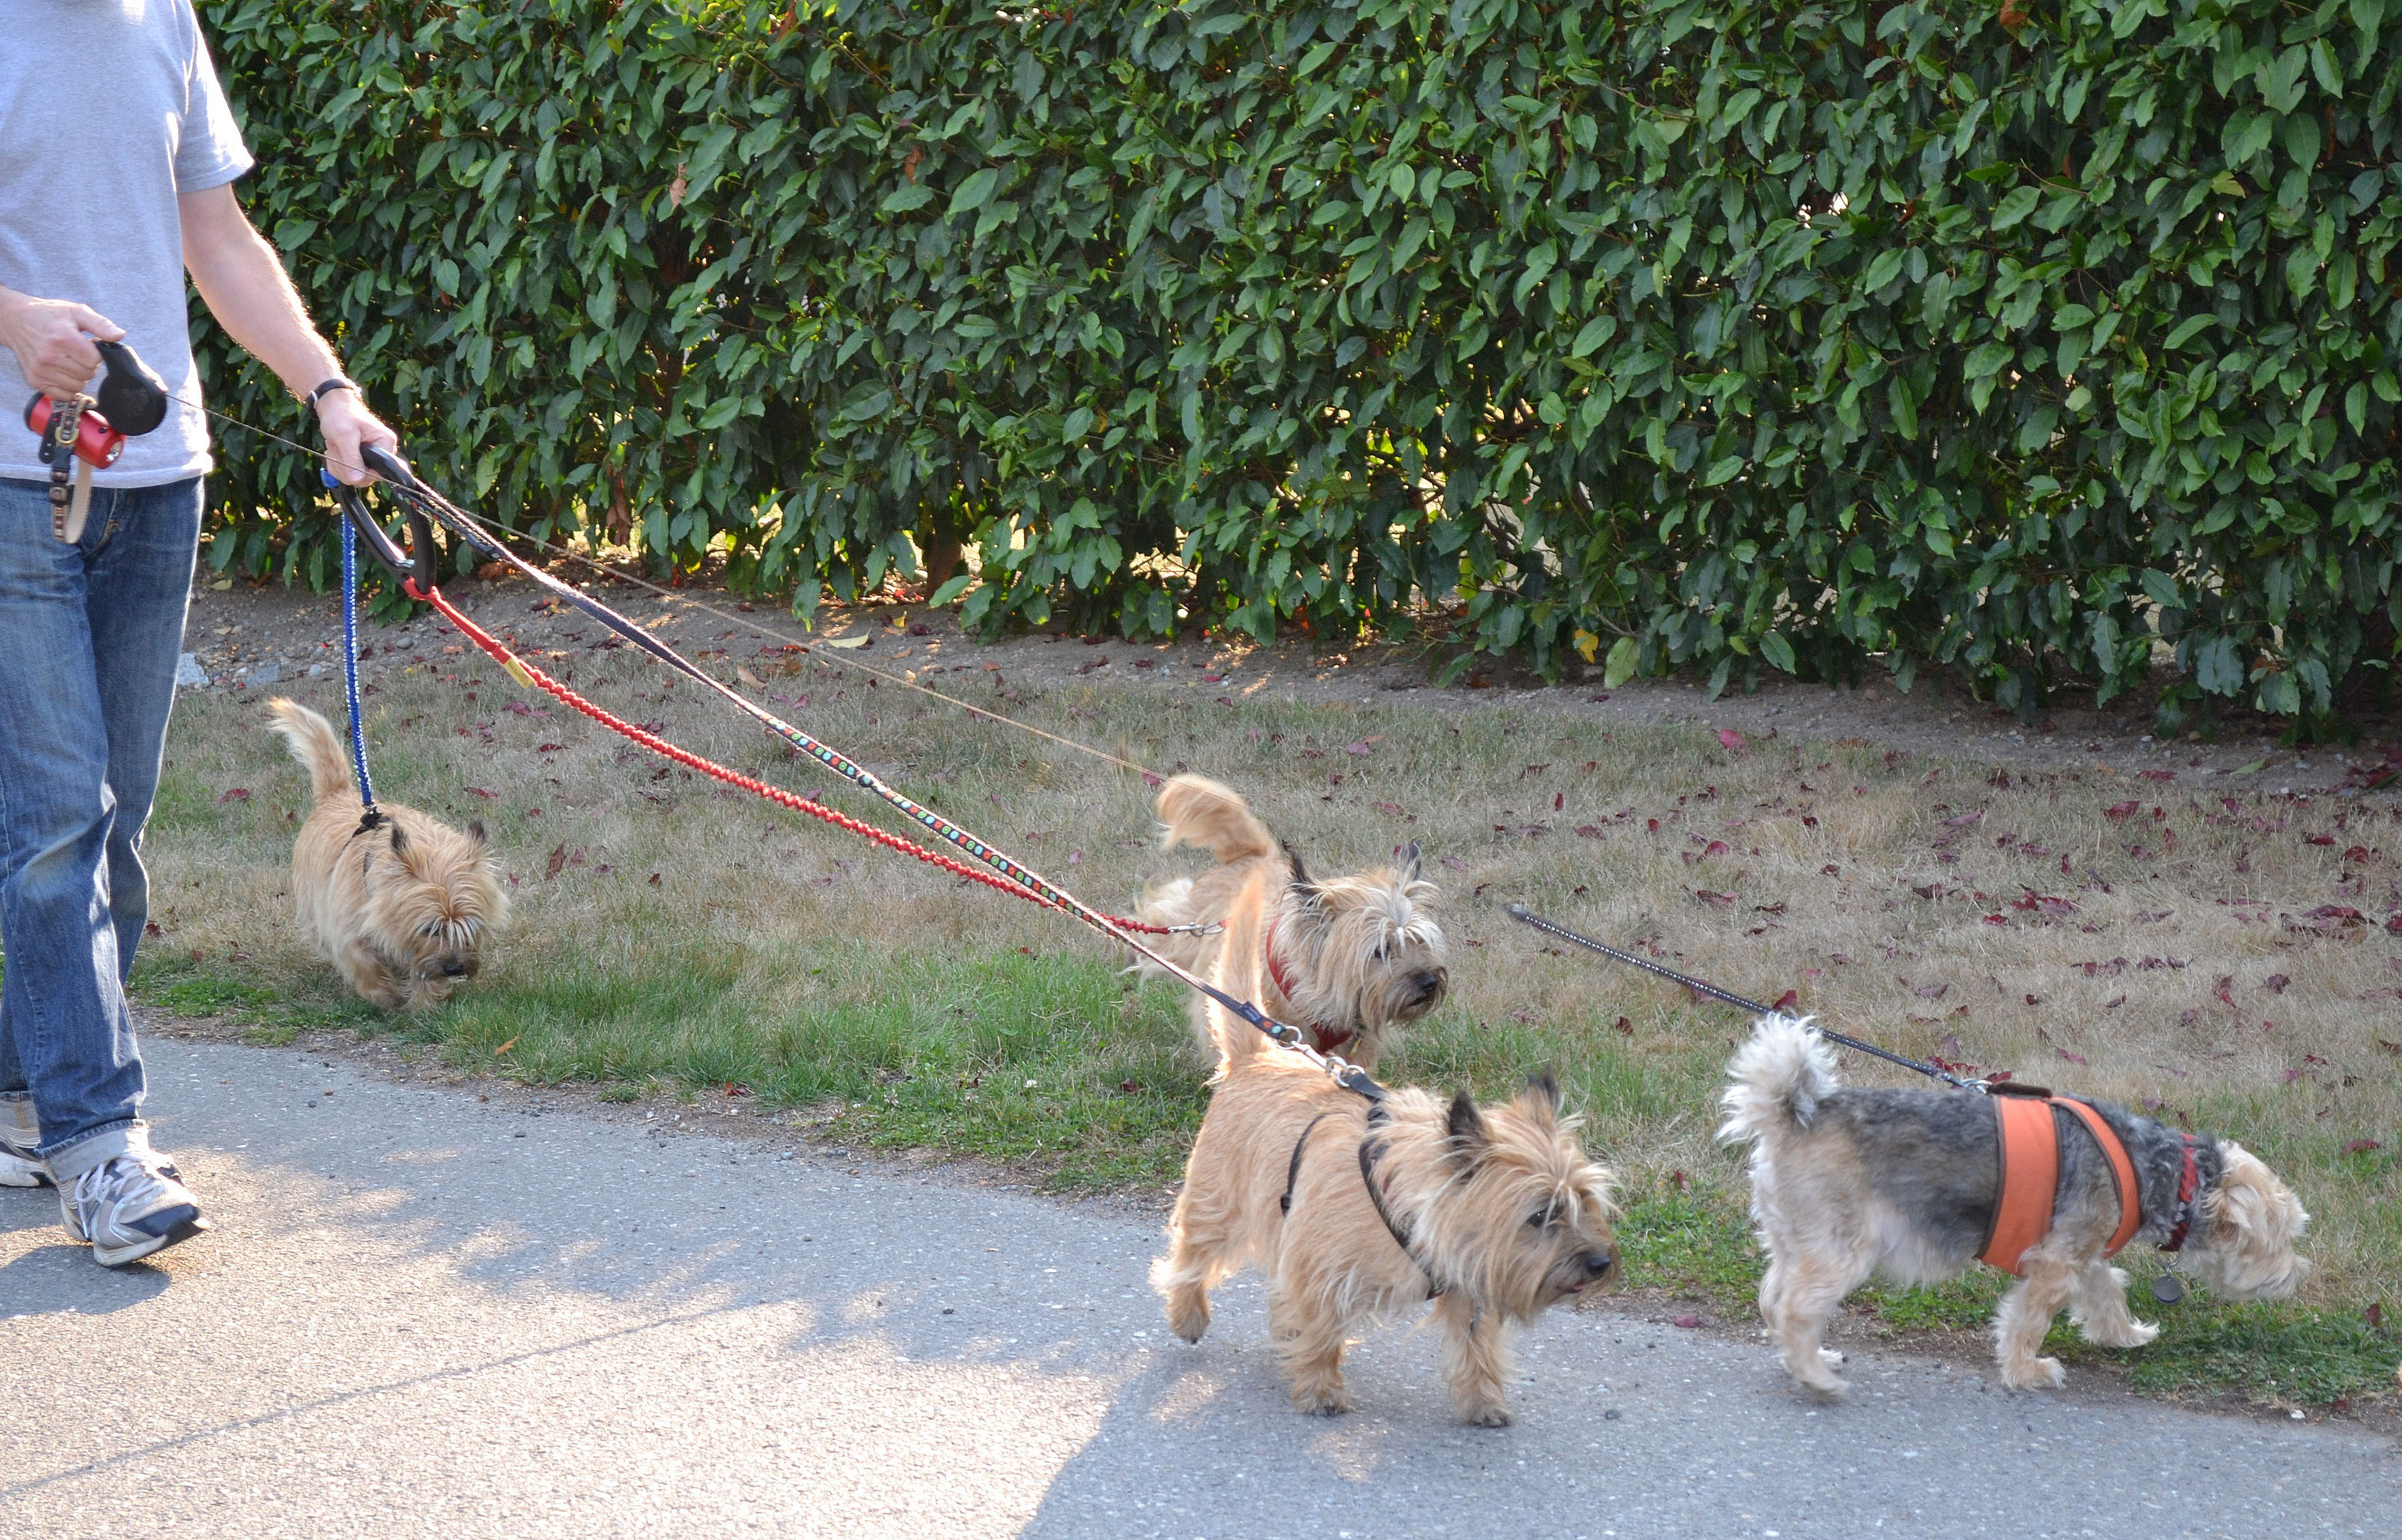 ZZ_Walking_4_doggies_with_UTurn_handle_-_Copy